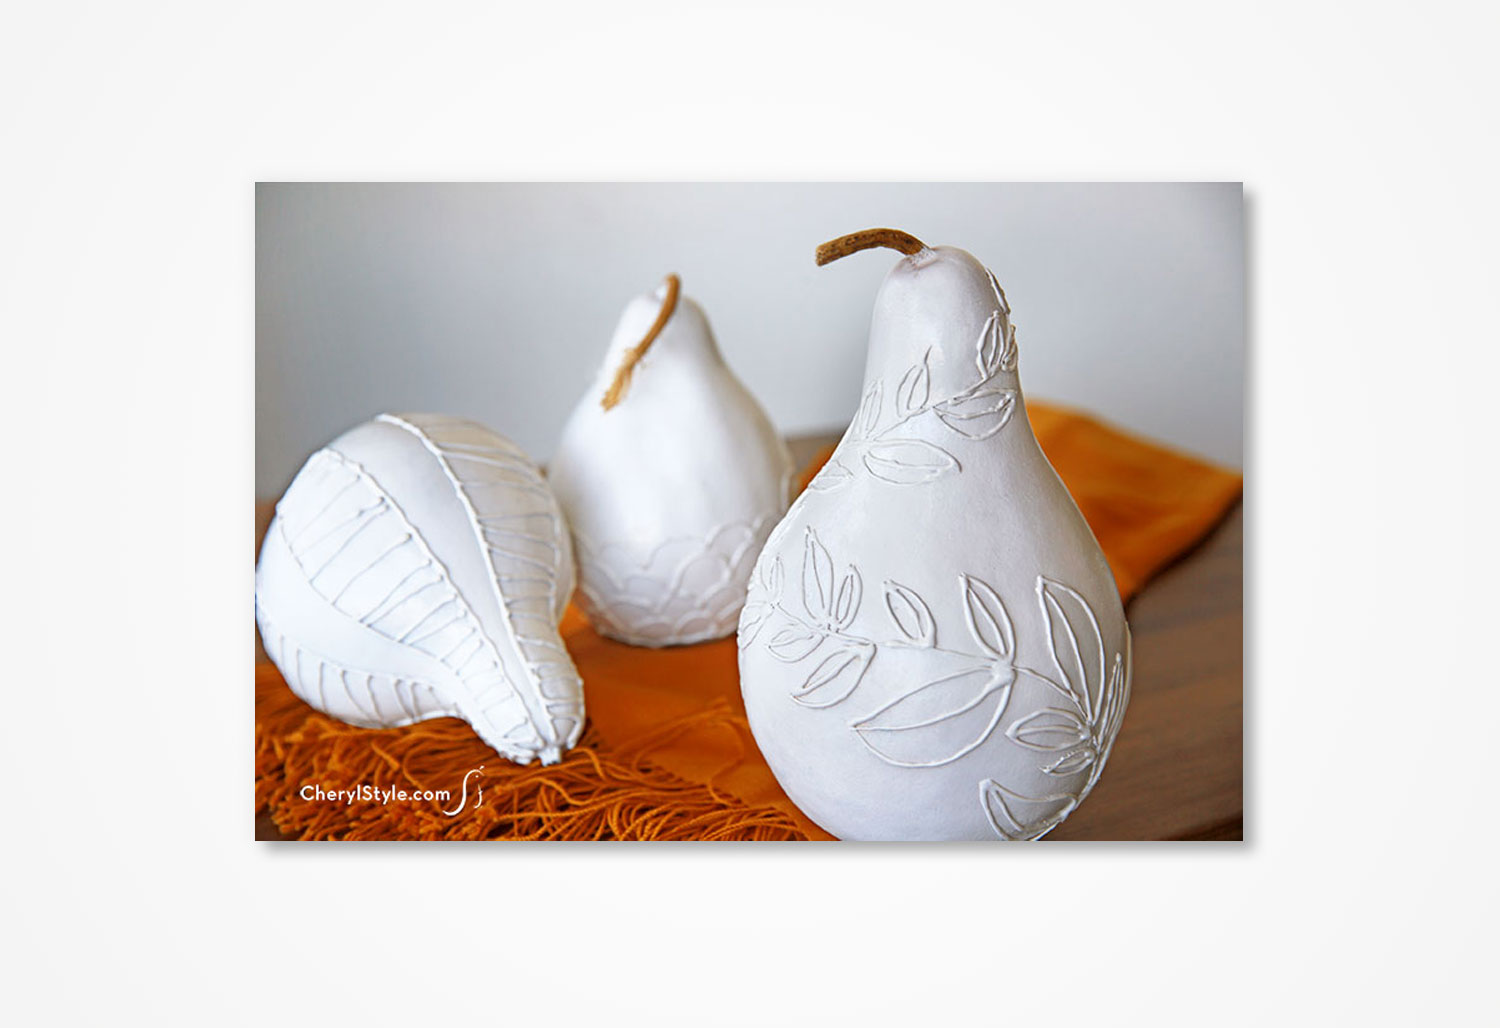 cs-hot-glue-gourds.jpg